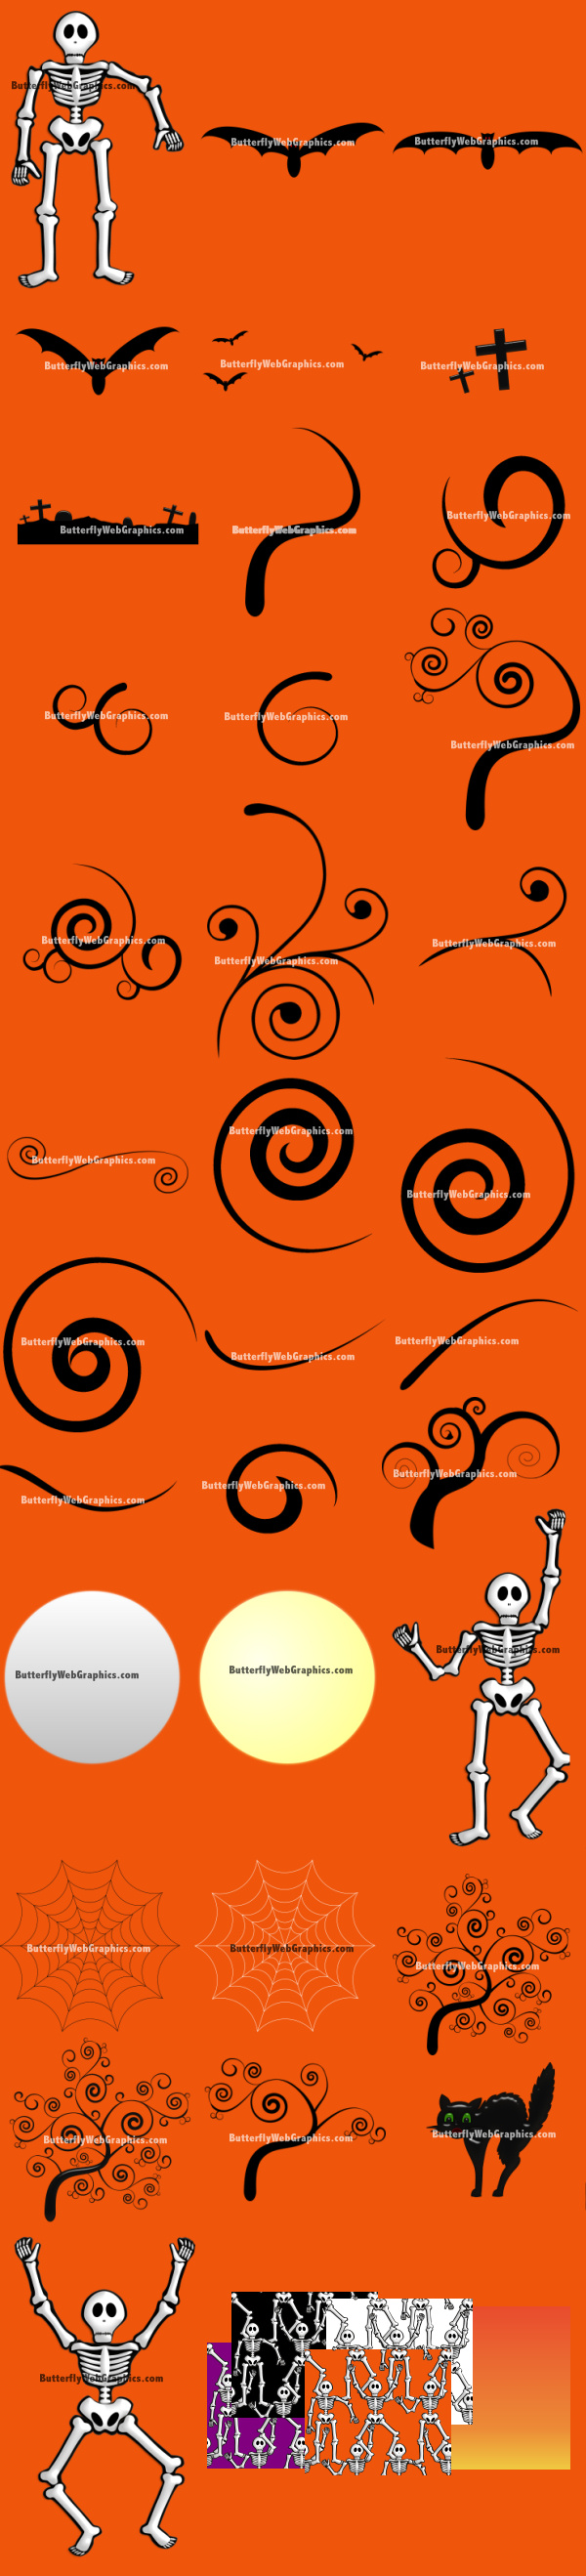 Halloween Swirl Graphics